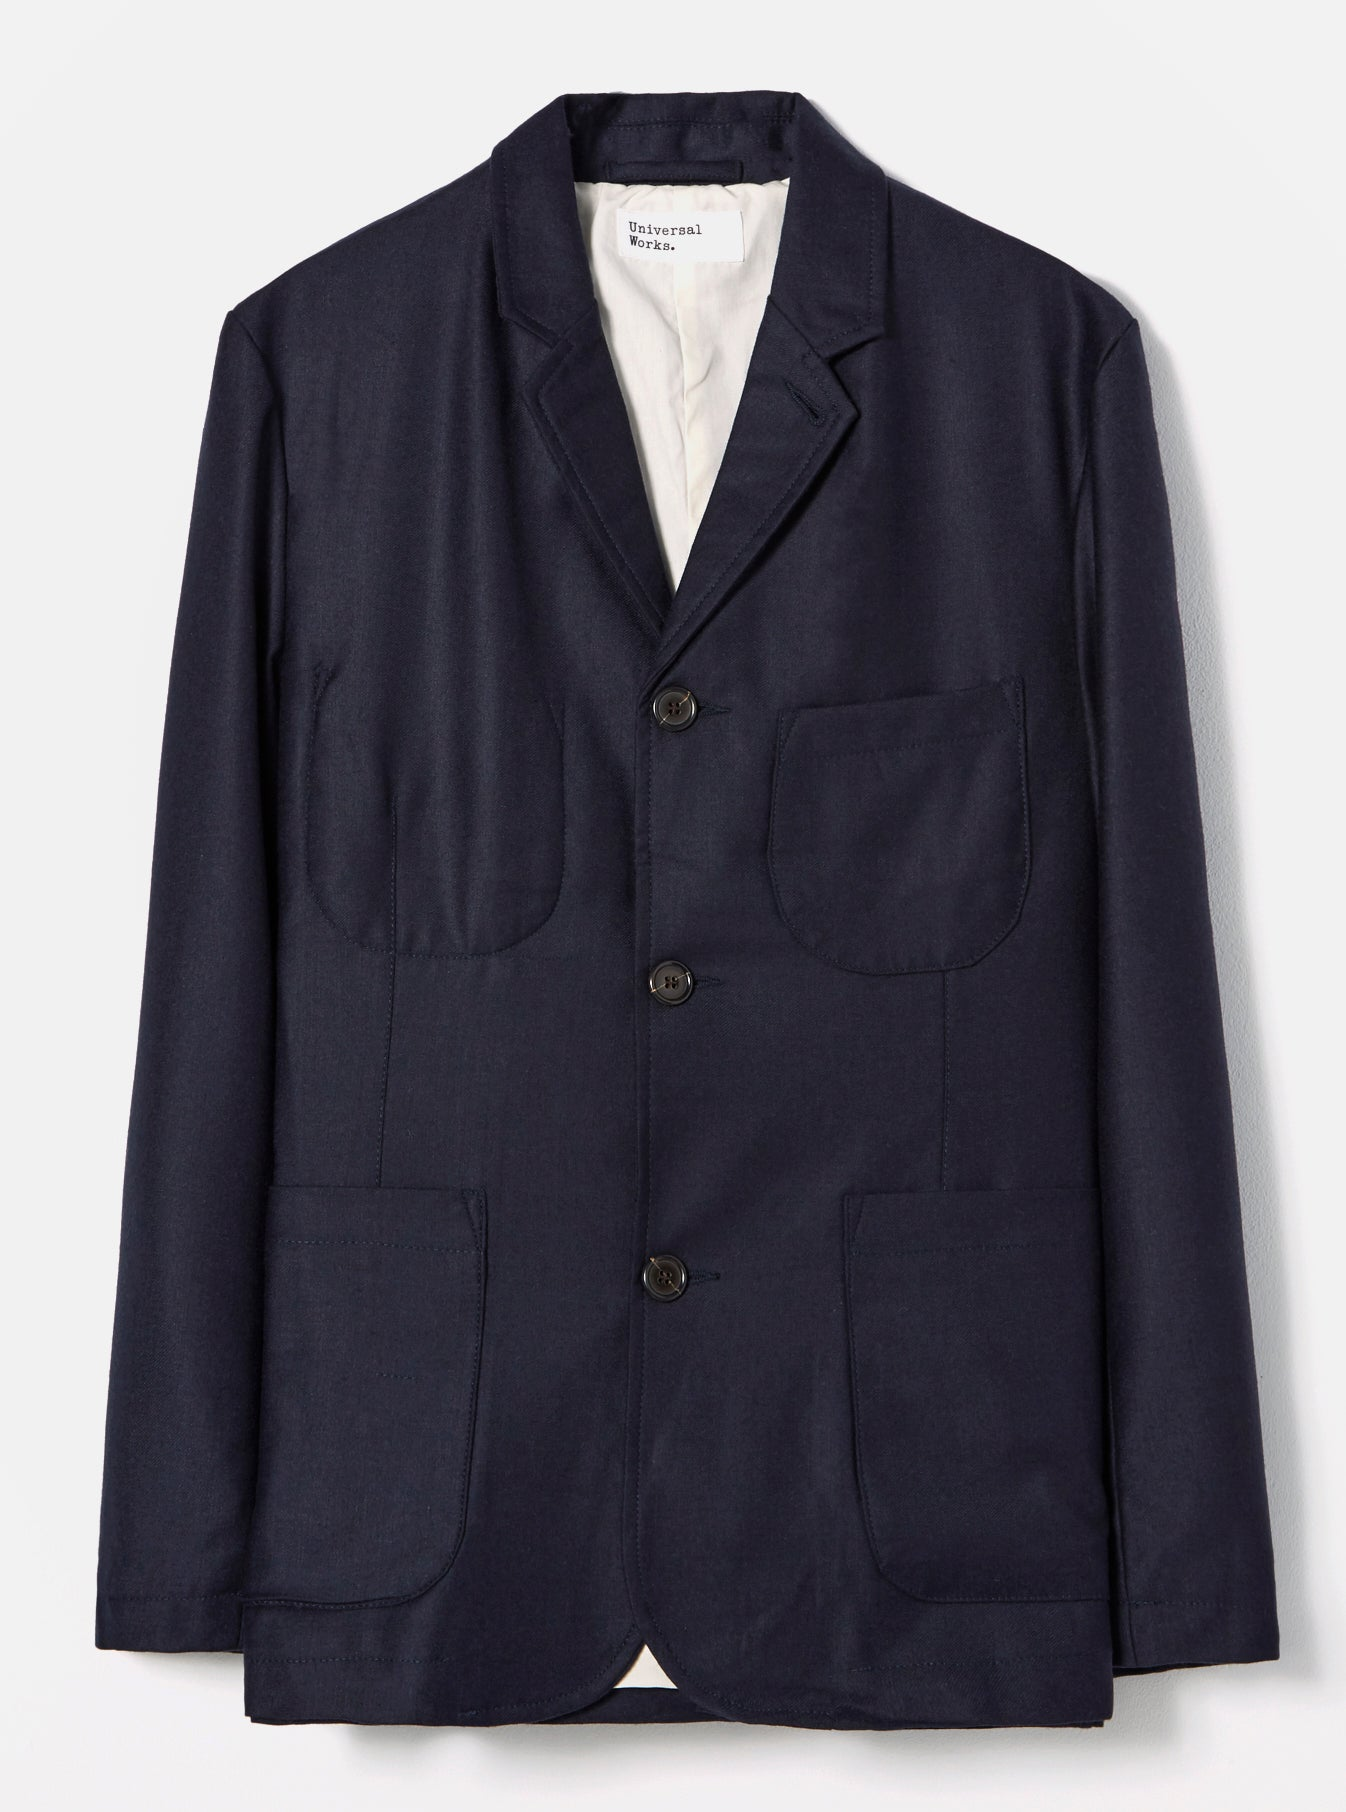 Universal Works Suit Jacket in Navy Flannel